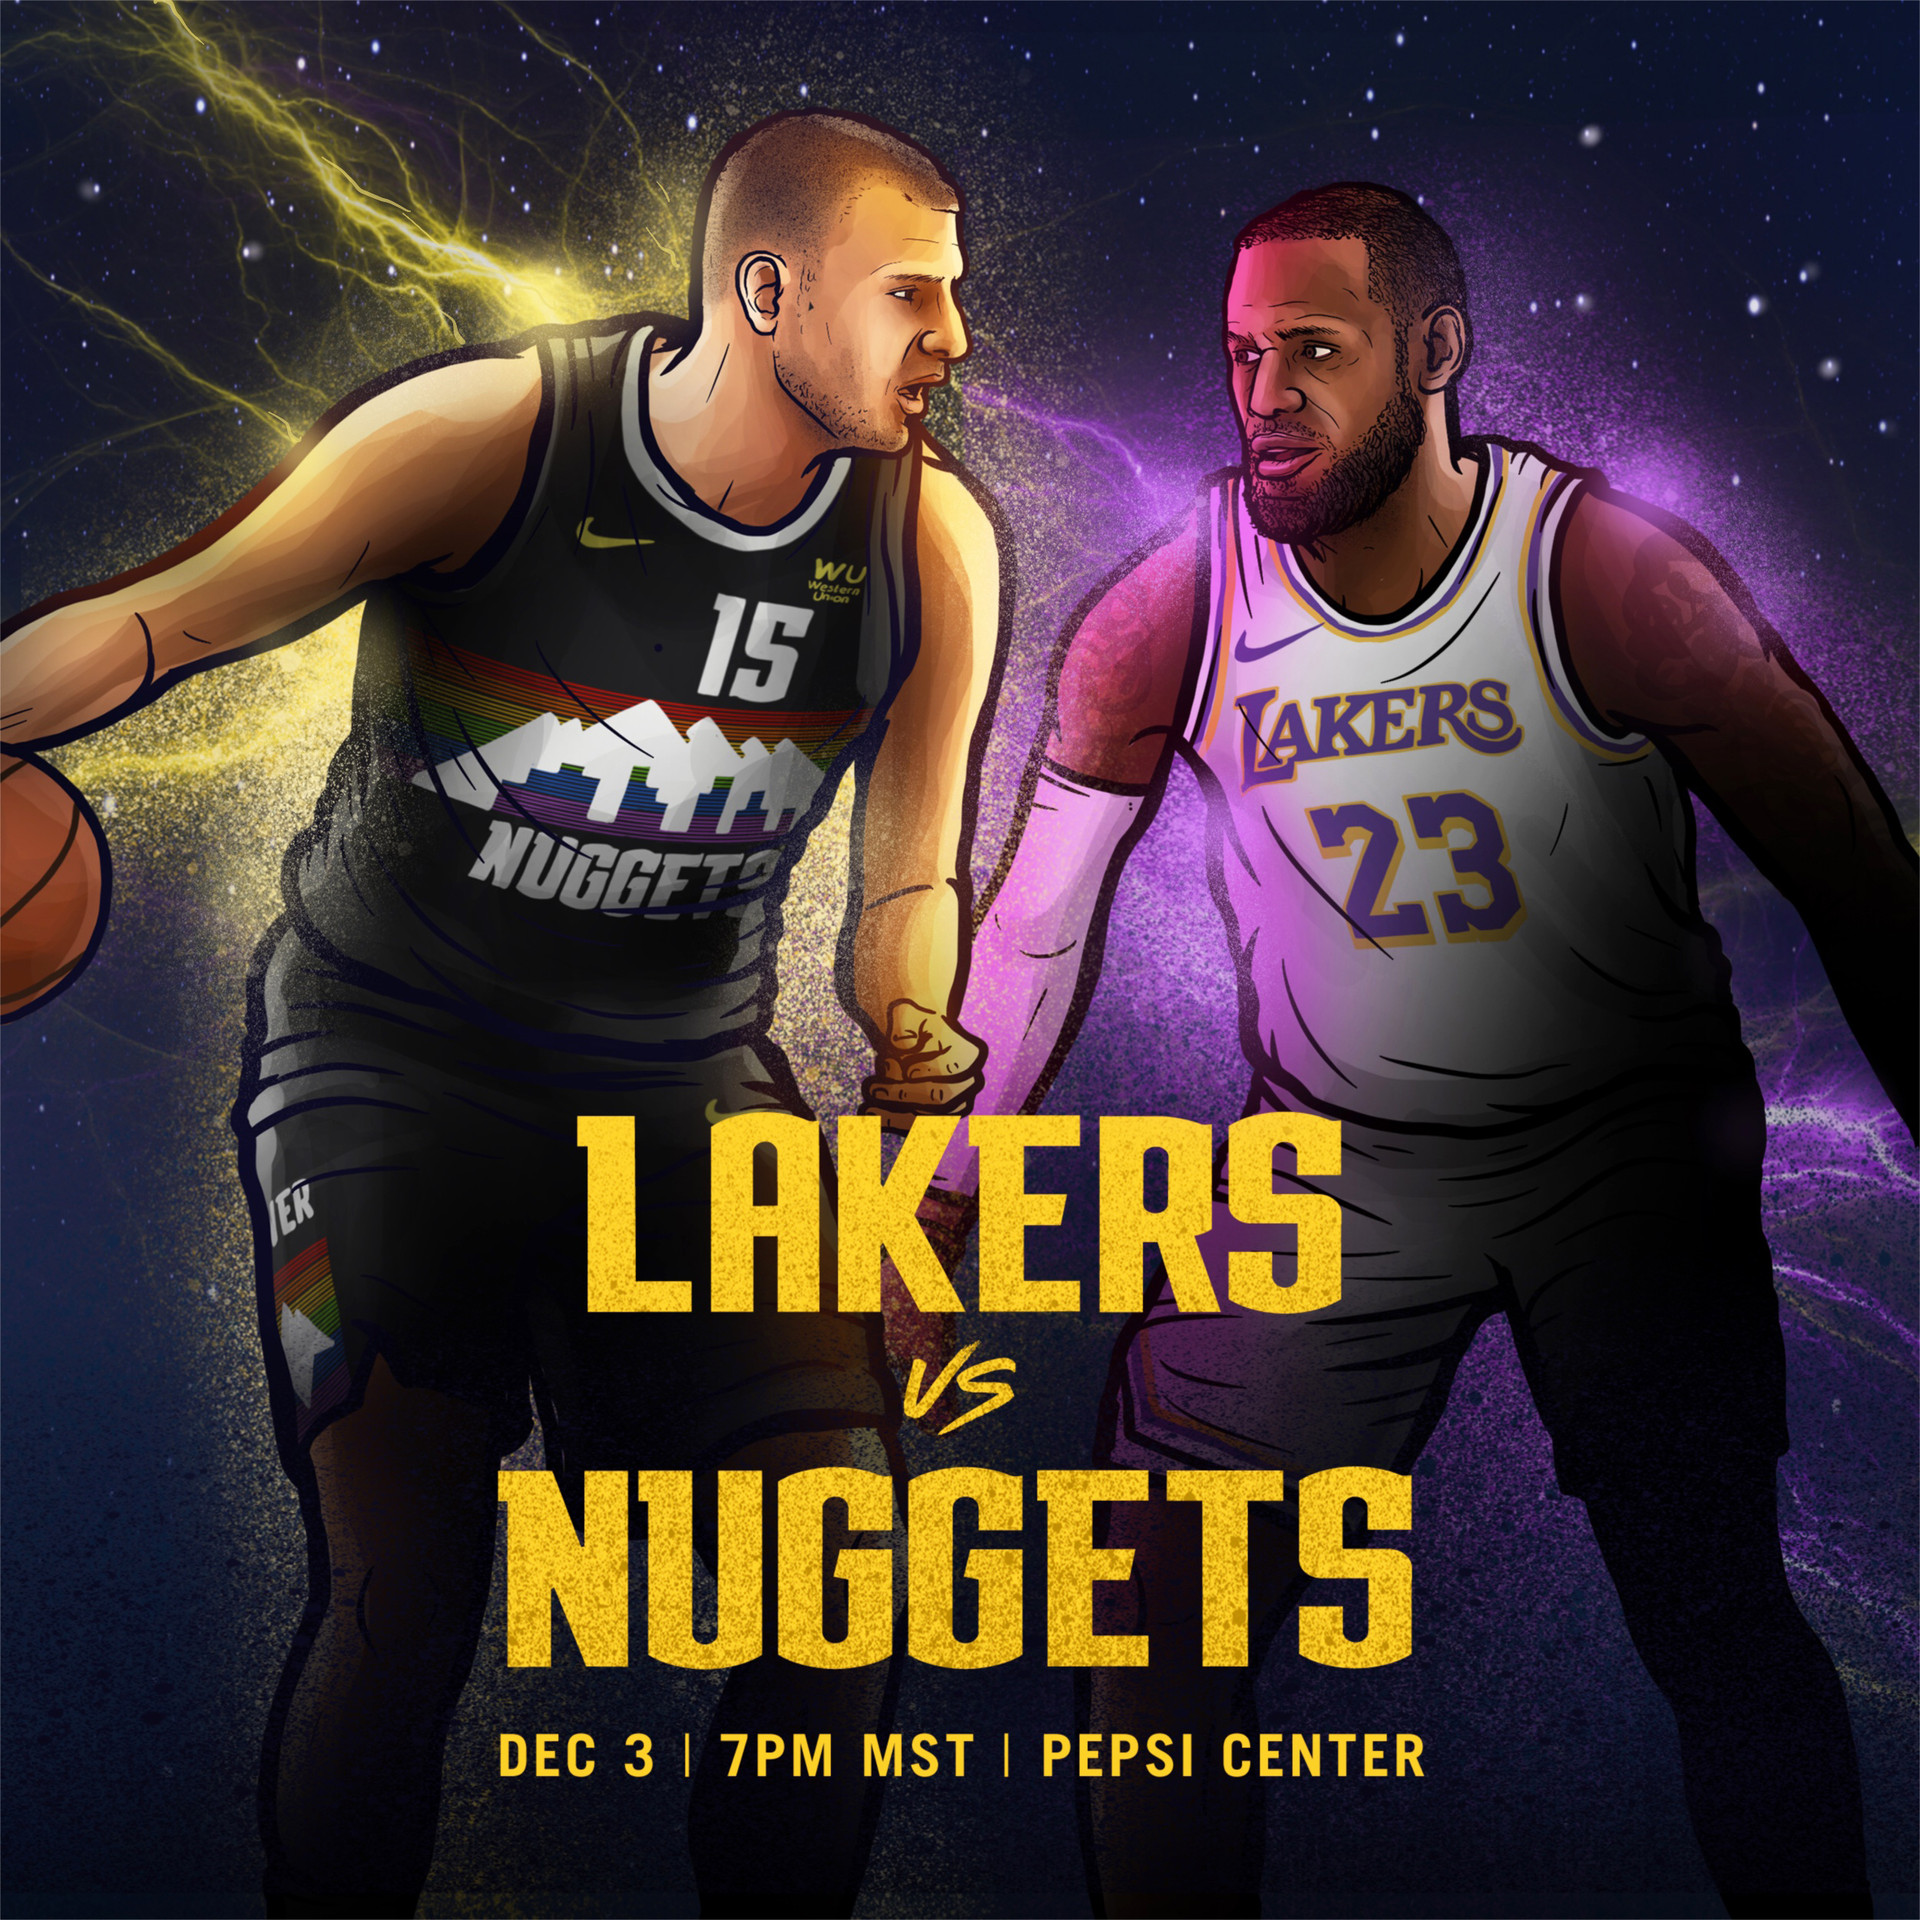 Nuggets_Vs_Lakers_V1.jpg